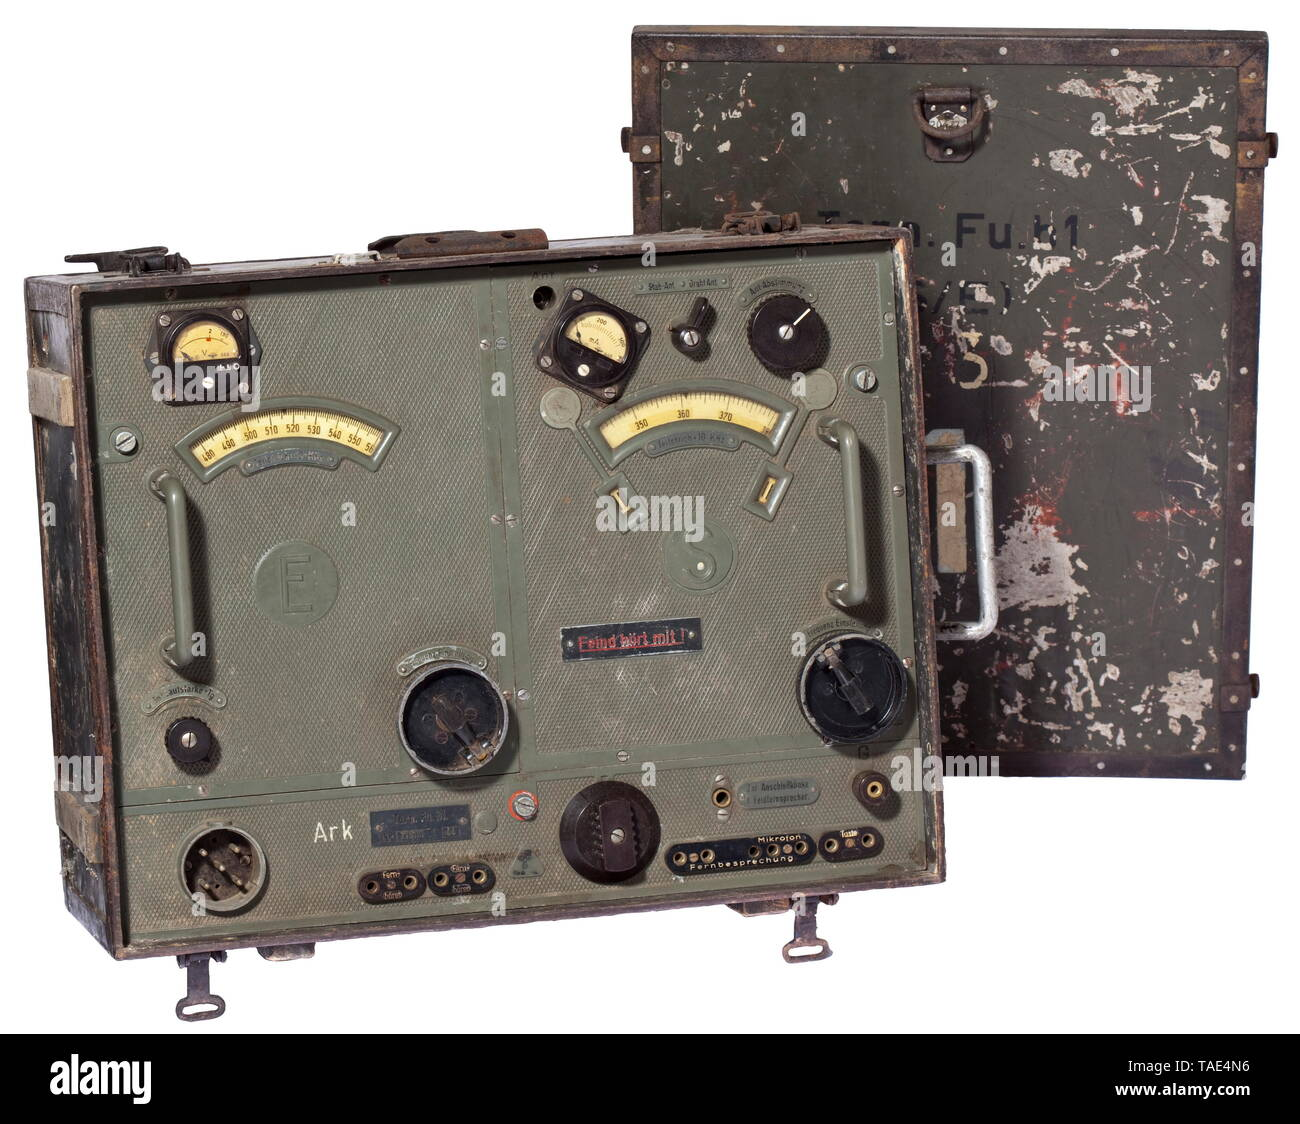 A radio equipment satchel Torn.Fu.b1 (S/E) universally deployable standard radio equipment for the Wehrmacht historic, historical, 20th century, Editorial-Use-Only - Stock Image